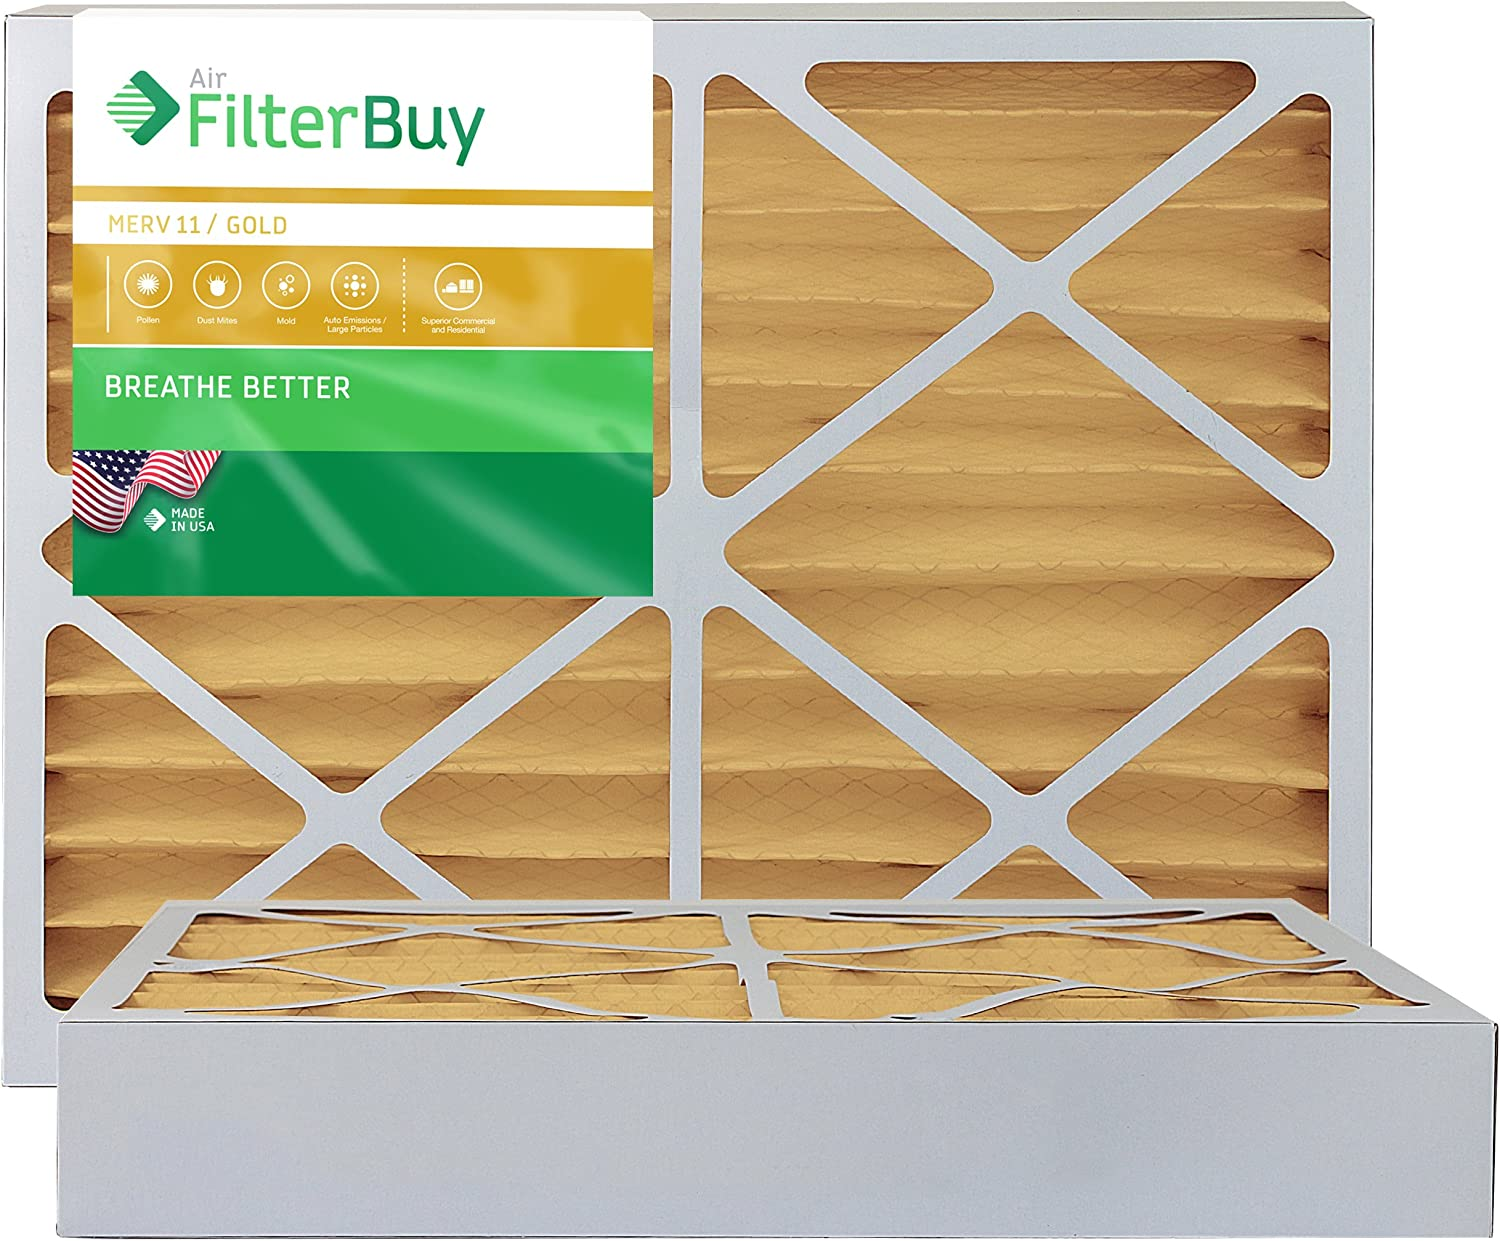 FilterBuy 20x25x4 MERV 11 Pleated AC Furnace Air Filter, (Pack of 2 Filters), 20x25x4 – Gold